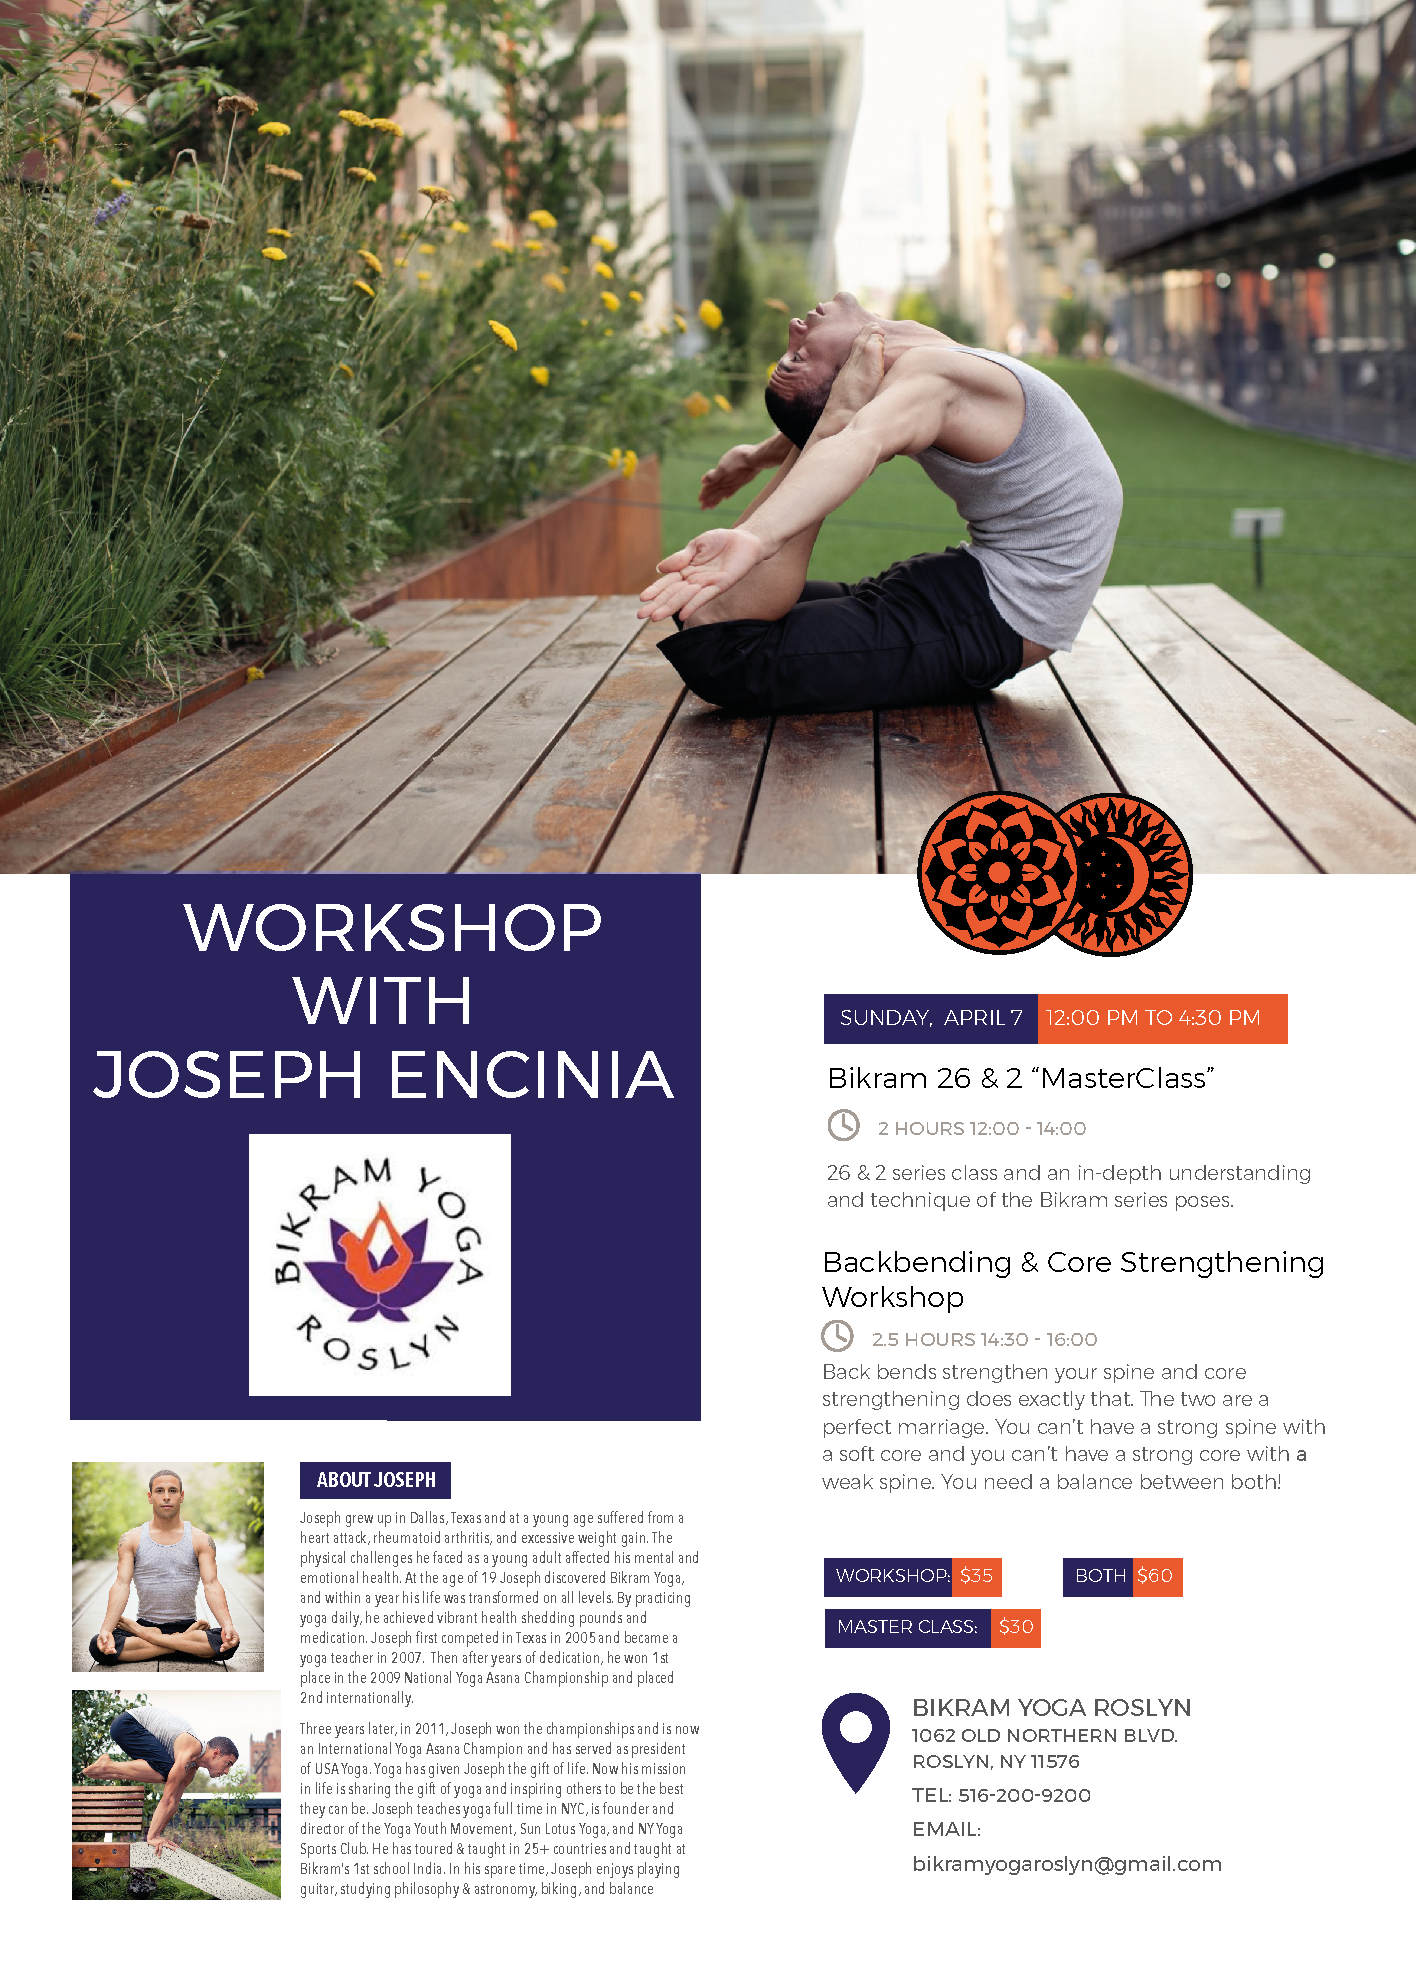 Roslyn, New York | April 7, 2019 | Back Bending and Core Strengthening Workshop